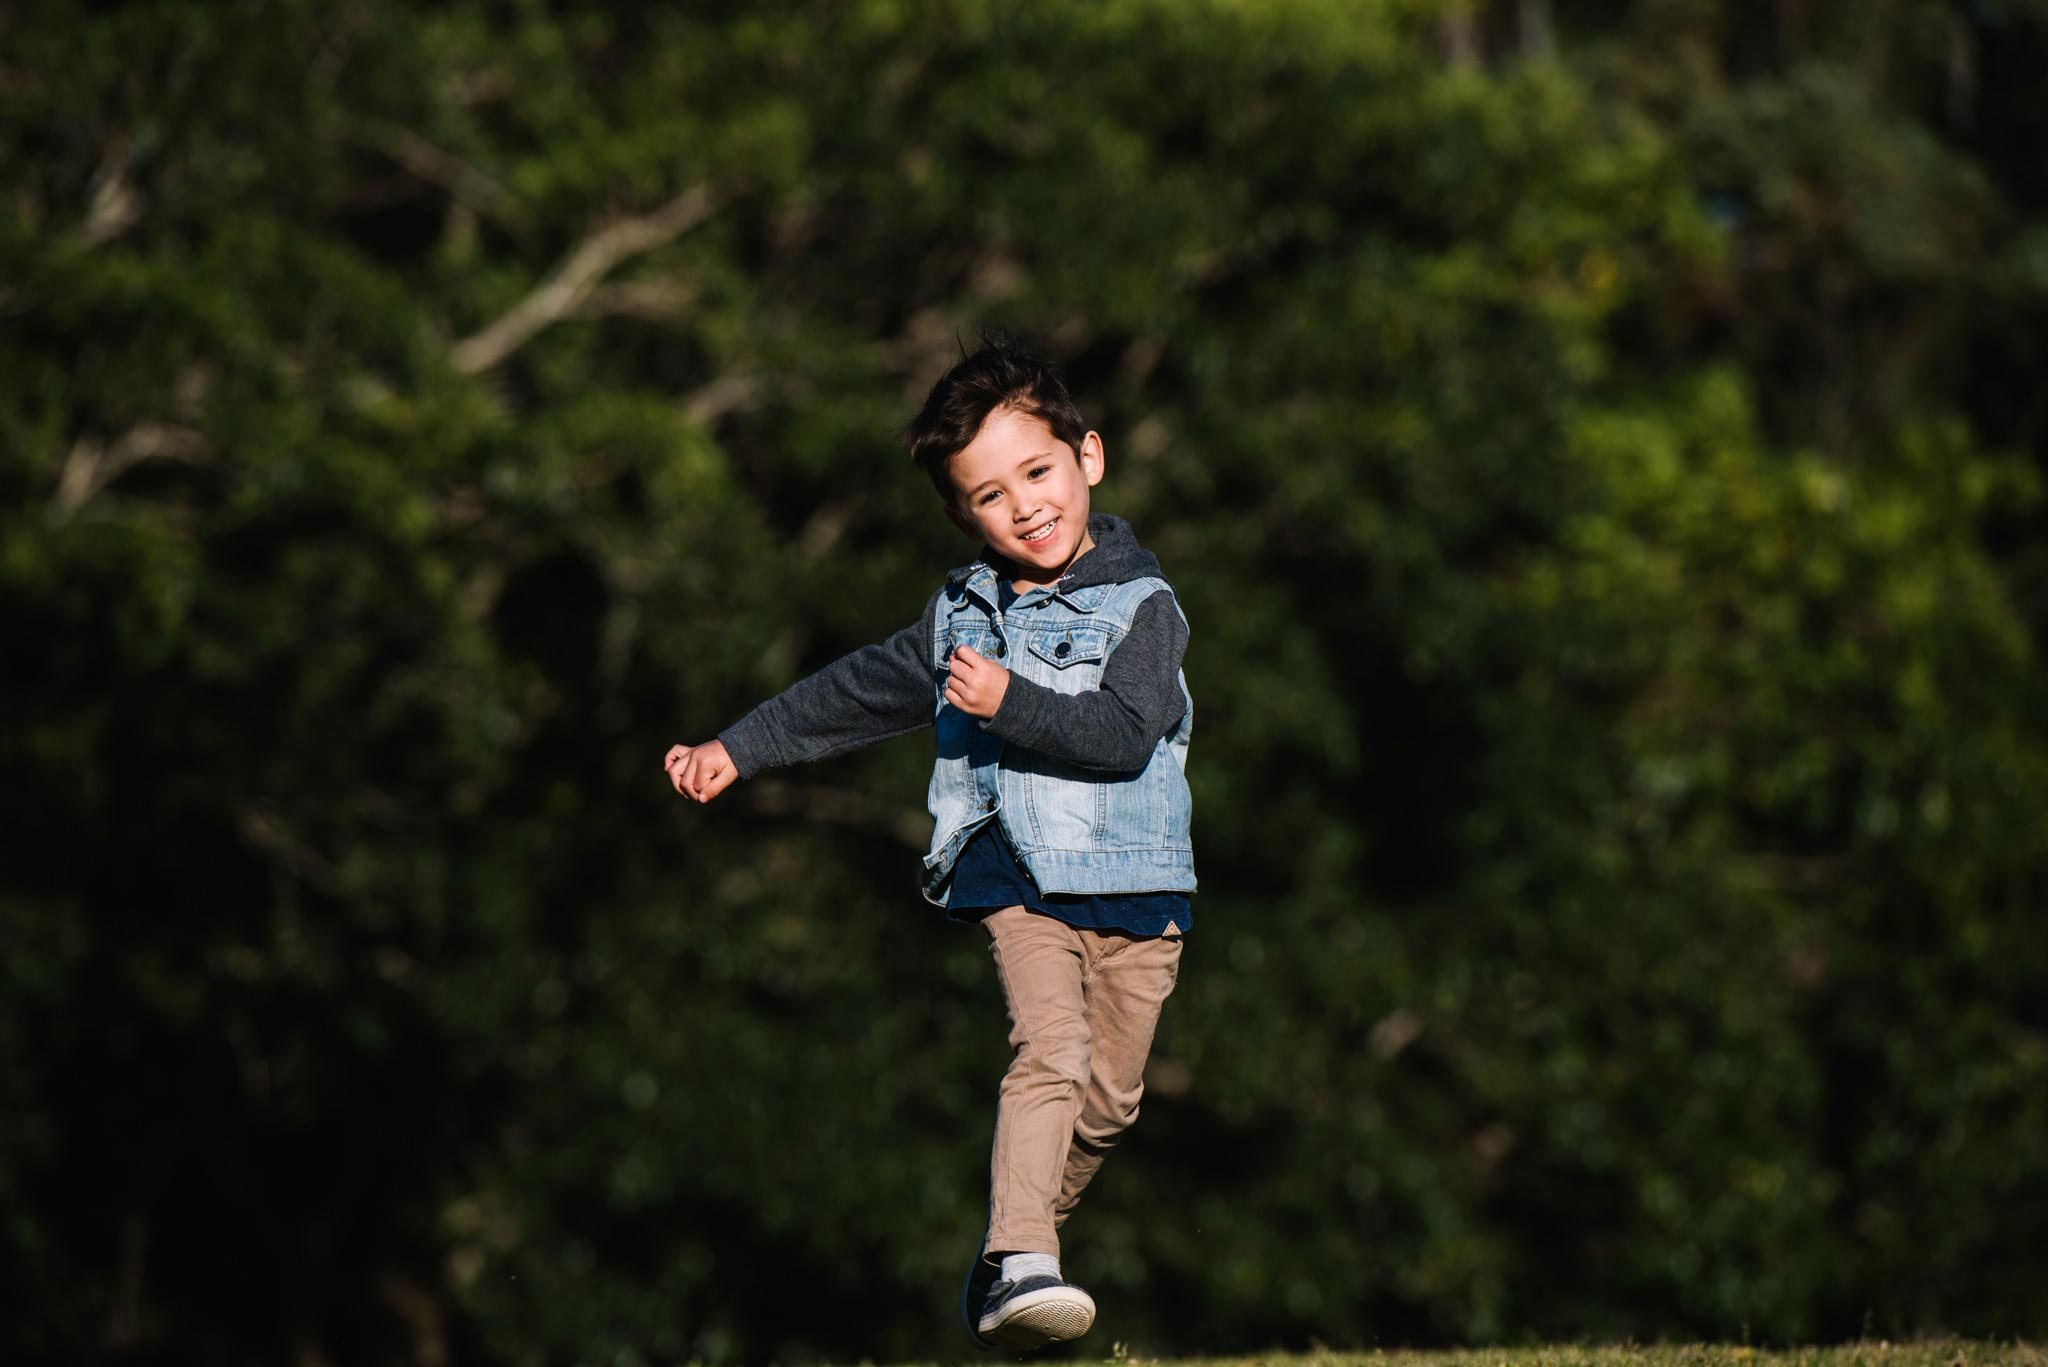 Boy running and leaping in the air